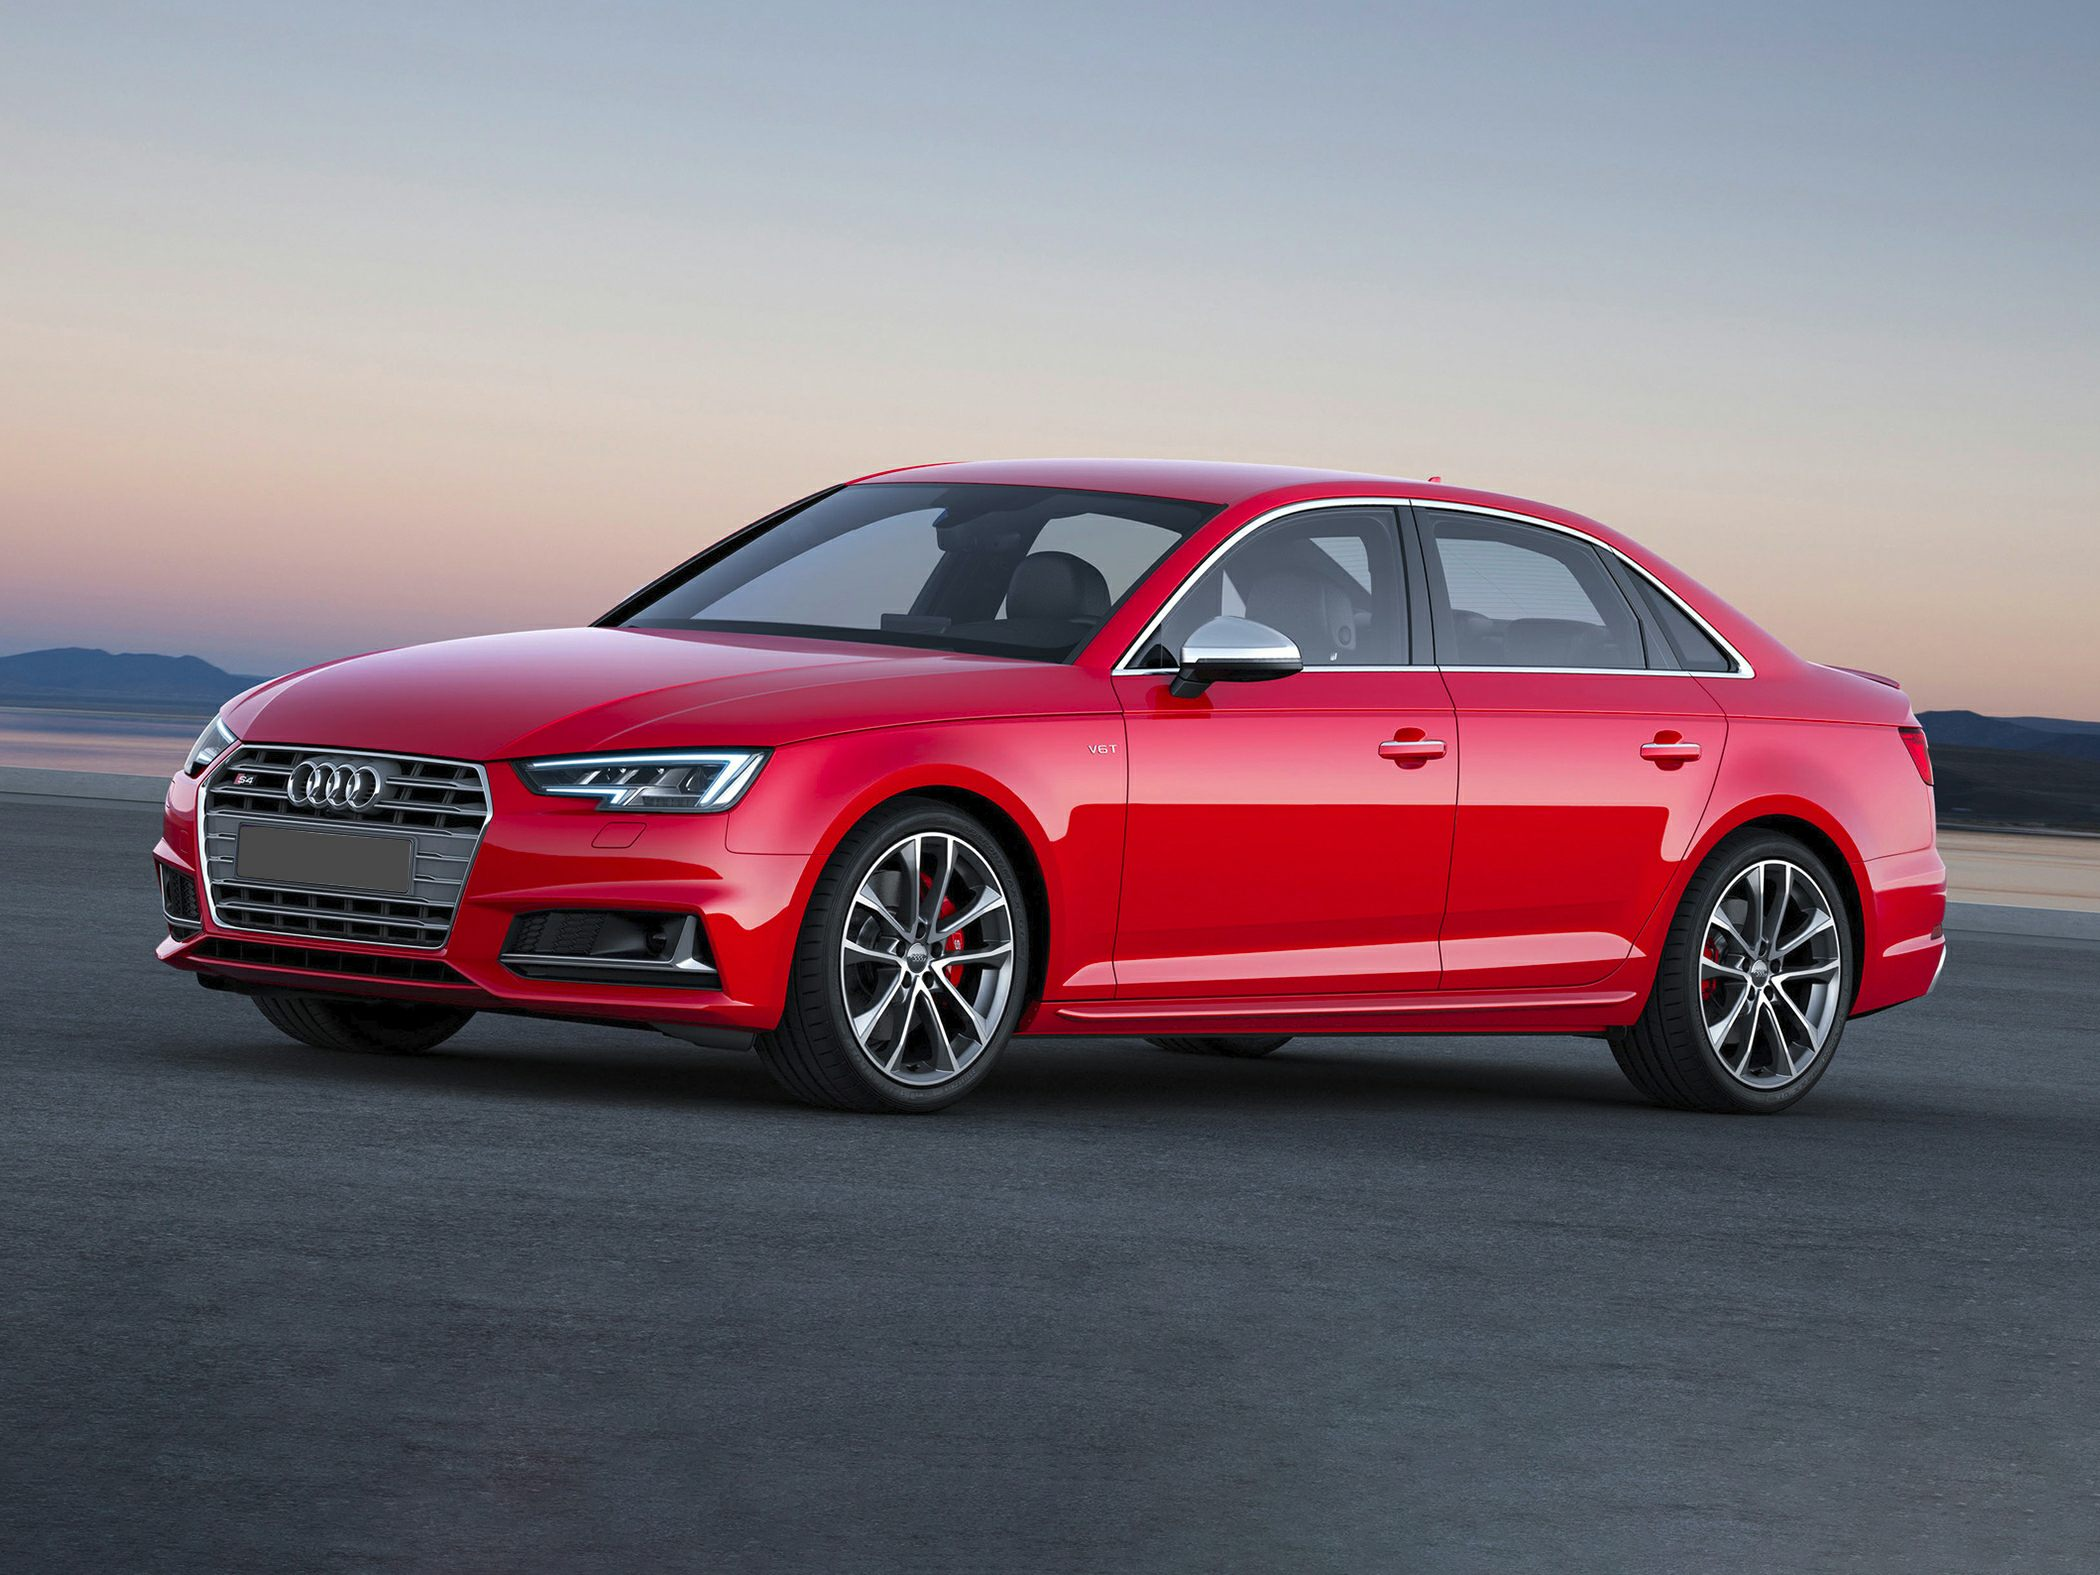 ca used sale sm tronic calgary images audi lease for quattro wheels car s